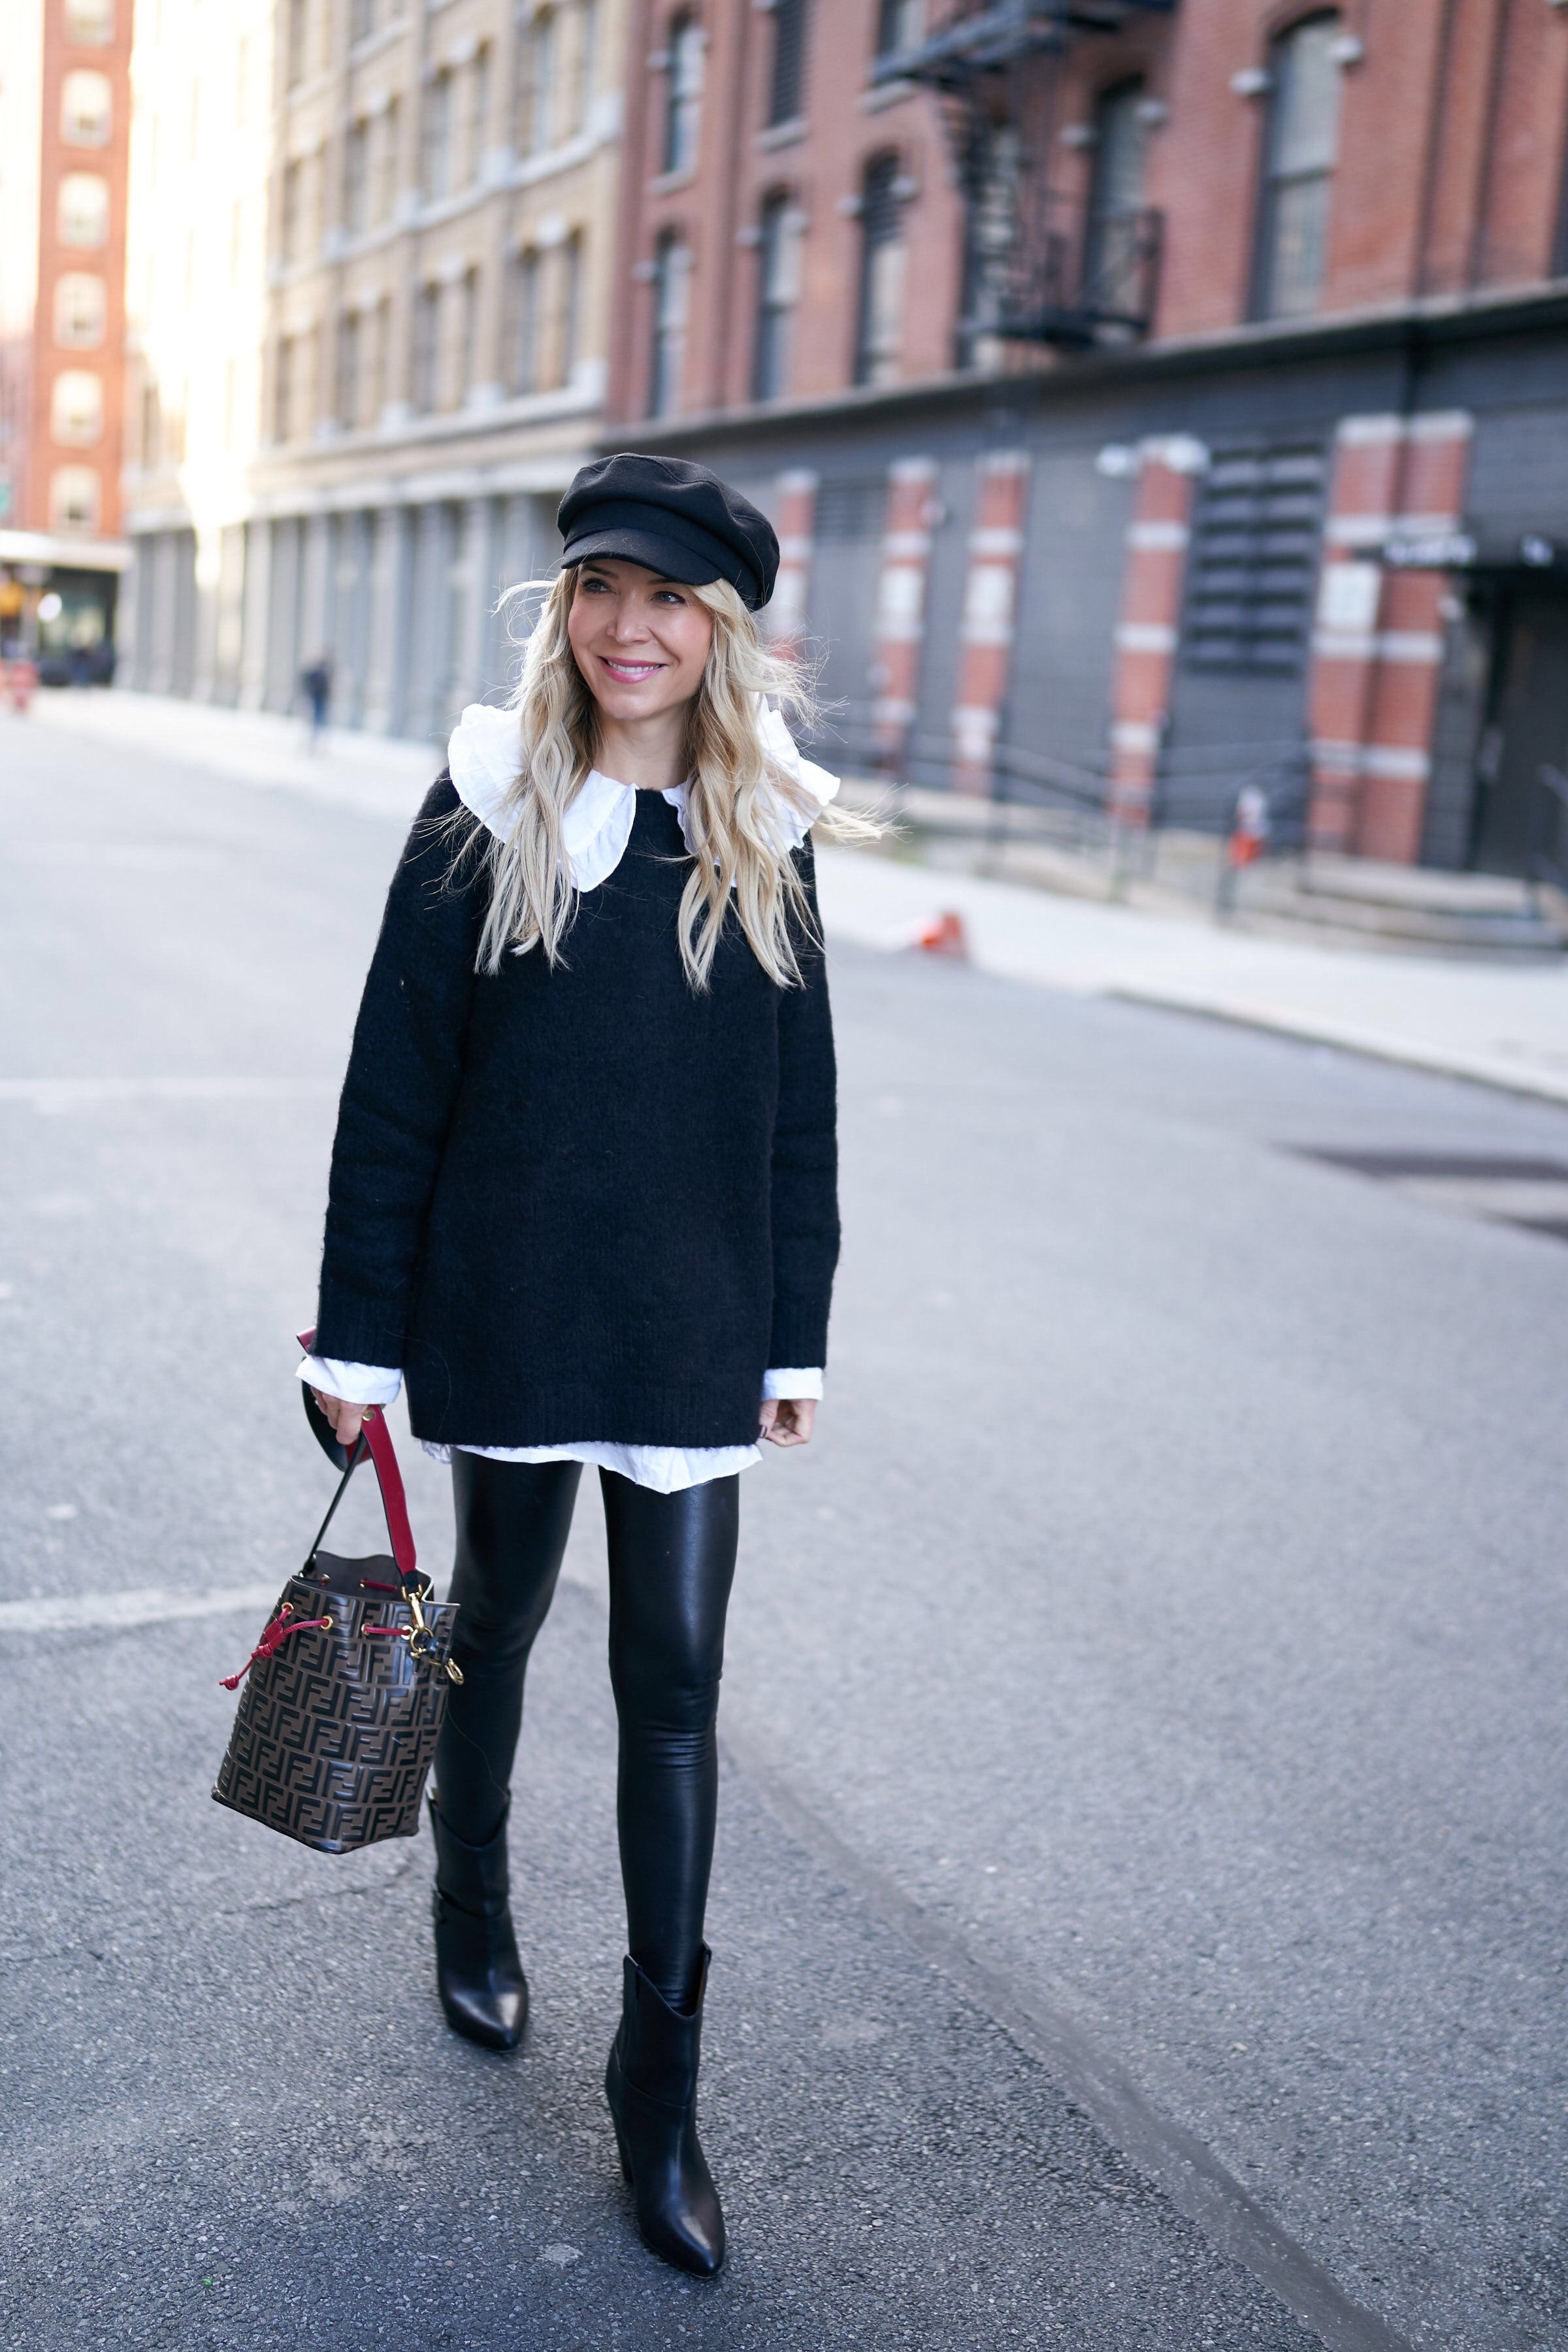 About the Outfits, Peter Pan Collar, Oversized Peter Pan Collar, Faux Leather Leggings, Newsboy Cap, www.abouttheoutfits.com, Fendi Mon Tresor, Laura Bonner, NYC fashion blogger